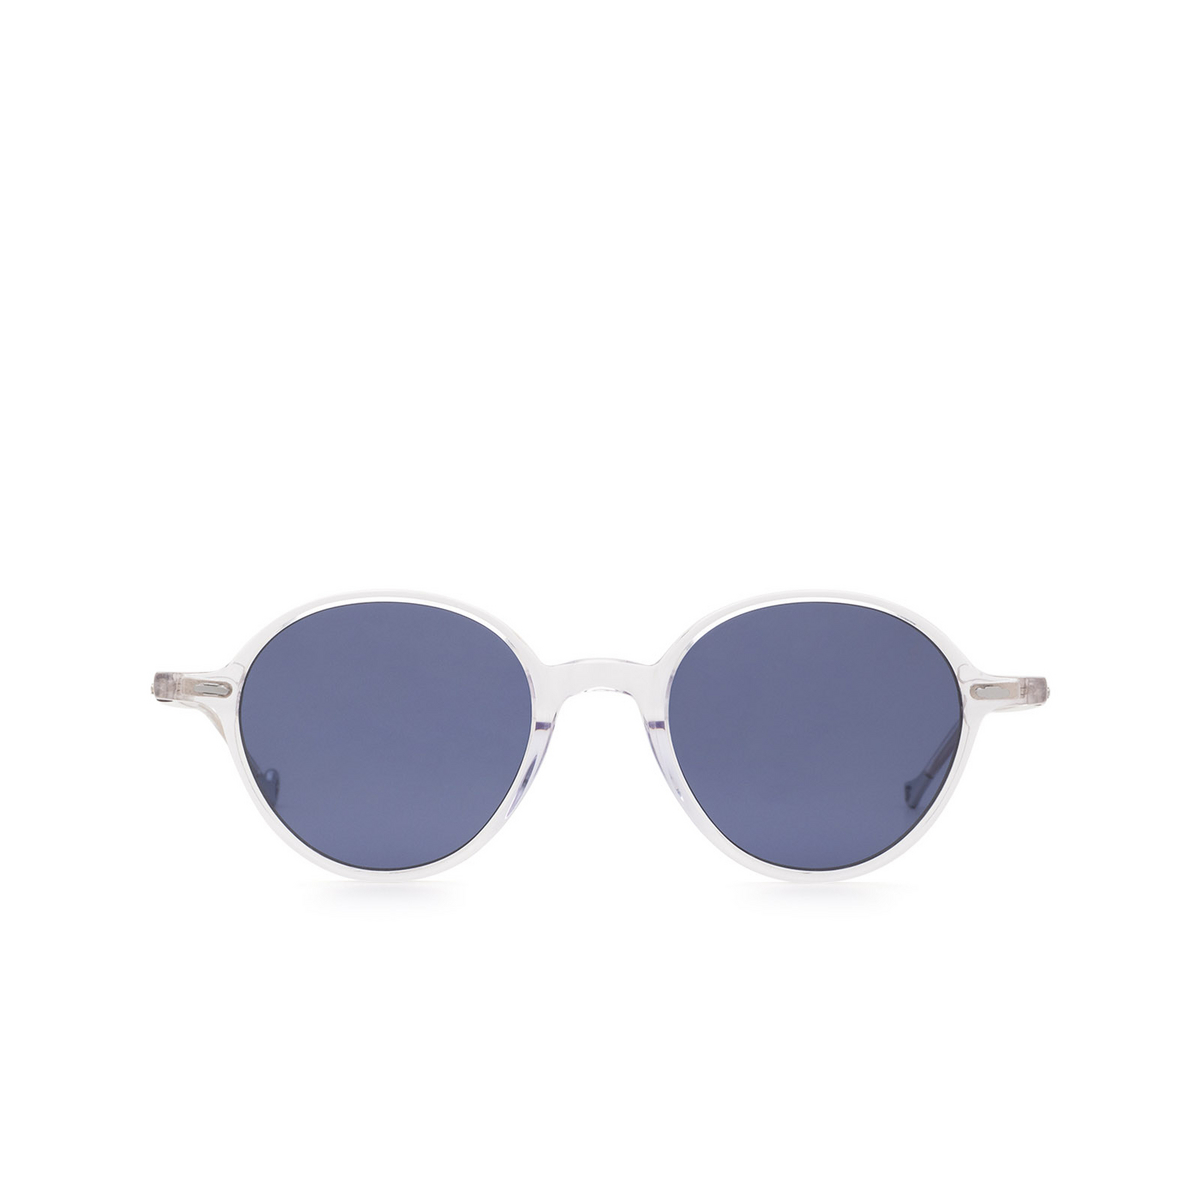 Eyepetizer® Round Sunglasses: Sforza color Crystal C.Y-39 - front view.